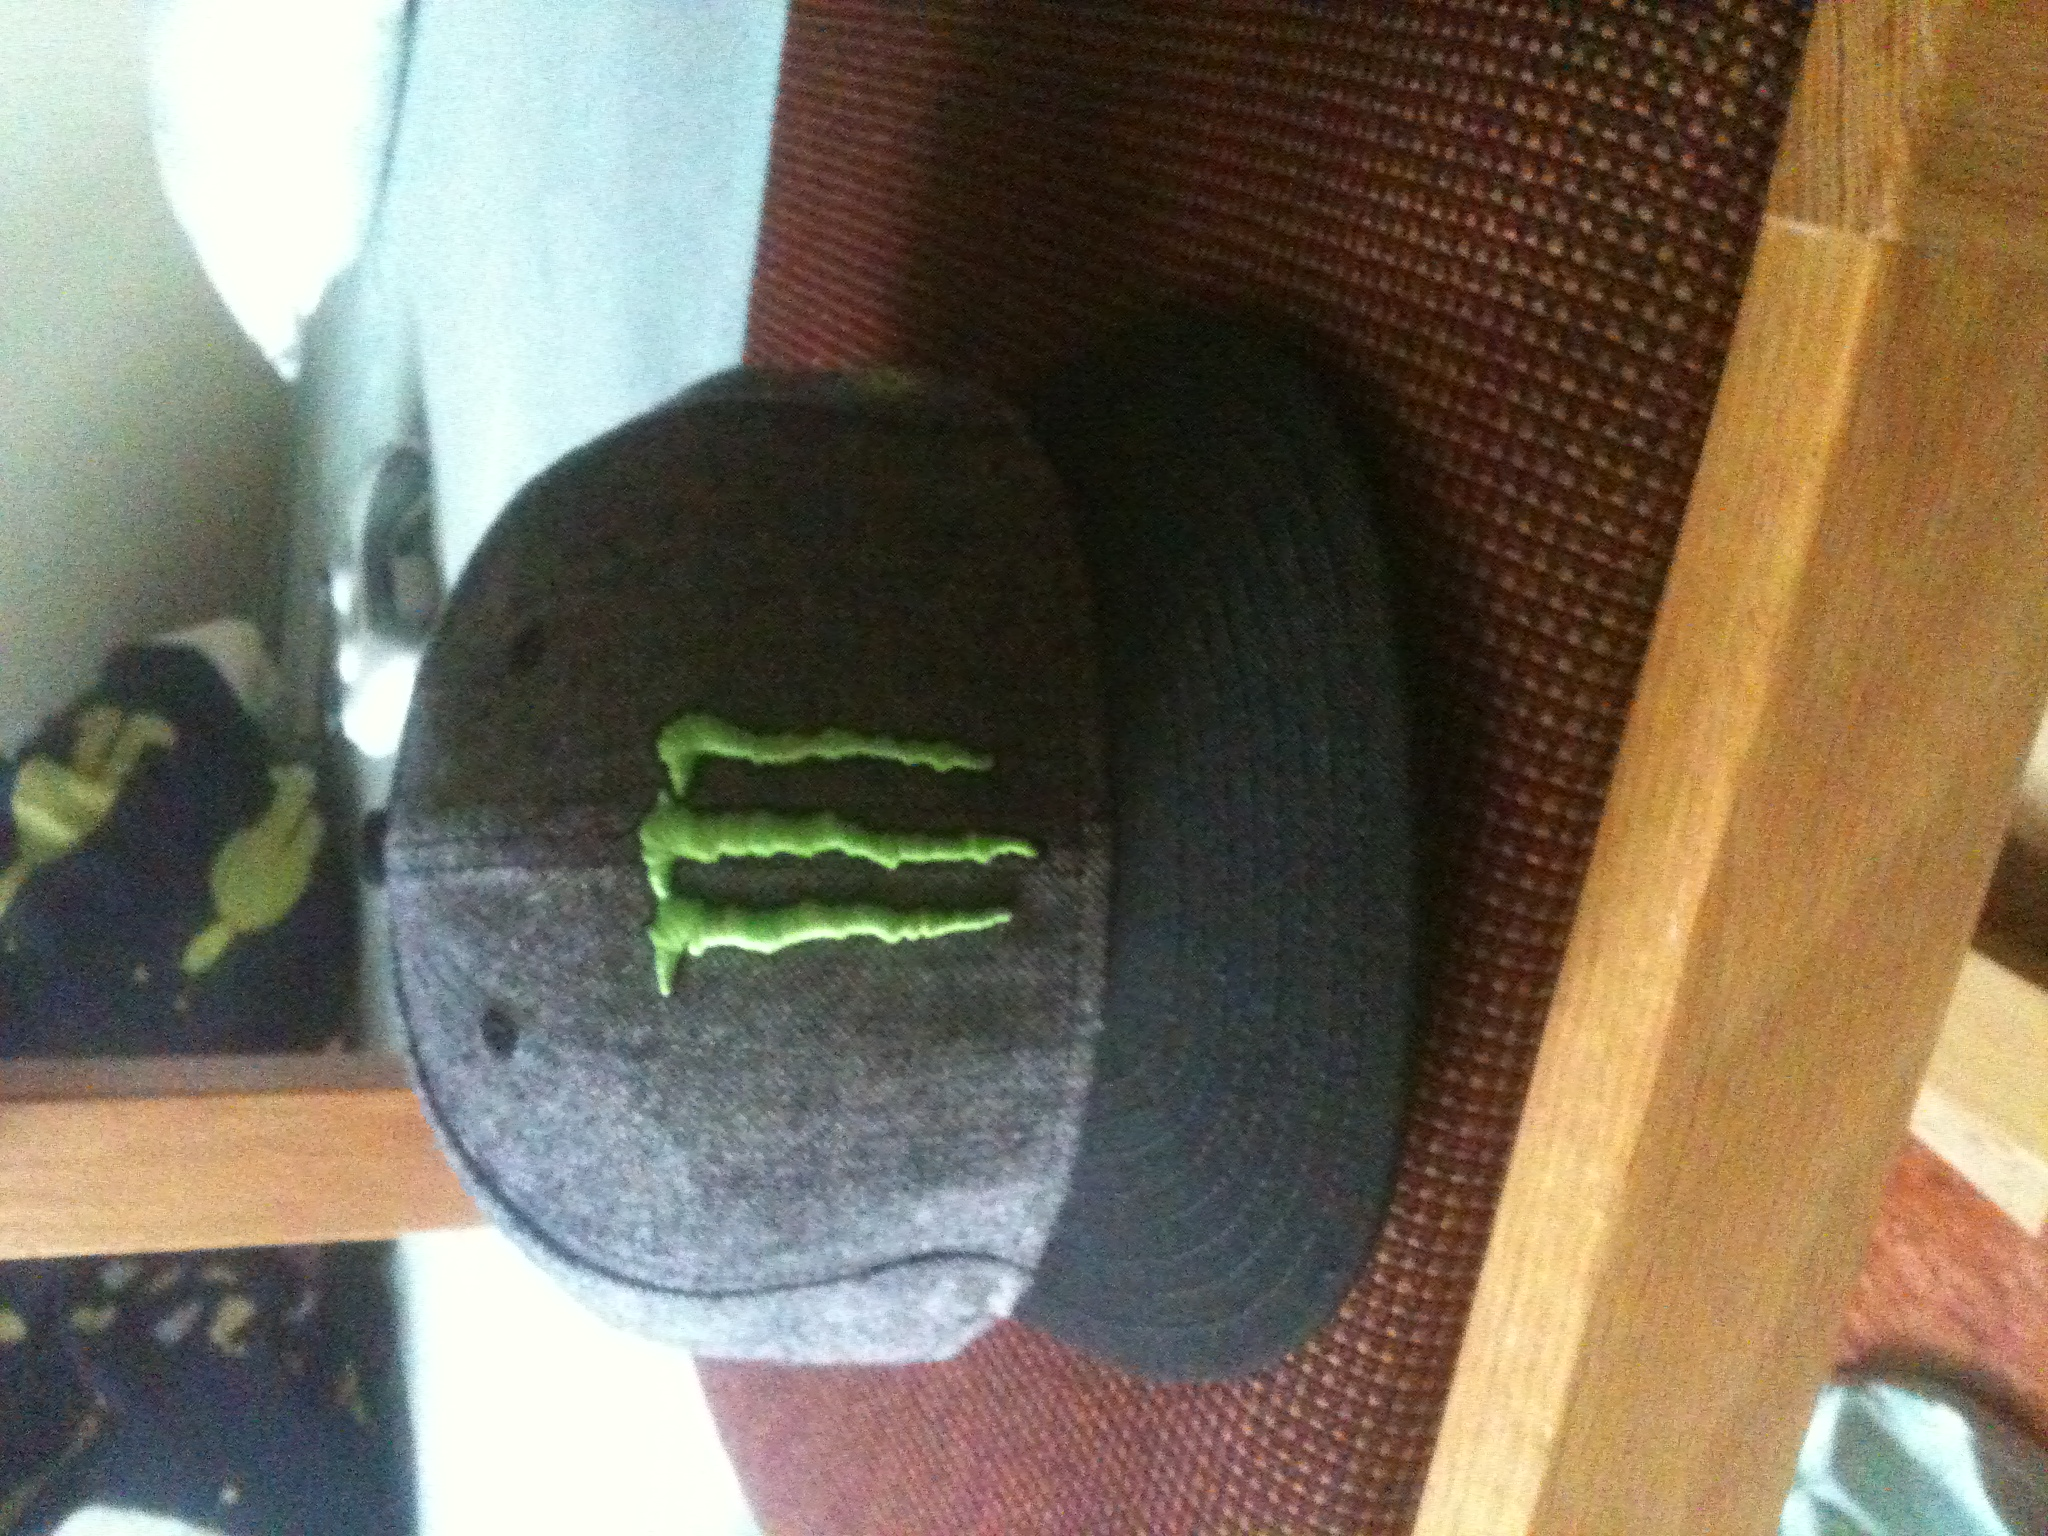 Monster Energy Athlete New Era for sale - Sell and Trade - Newschoolers.com ab4b5bbabed